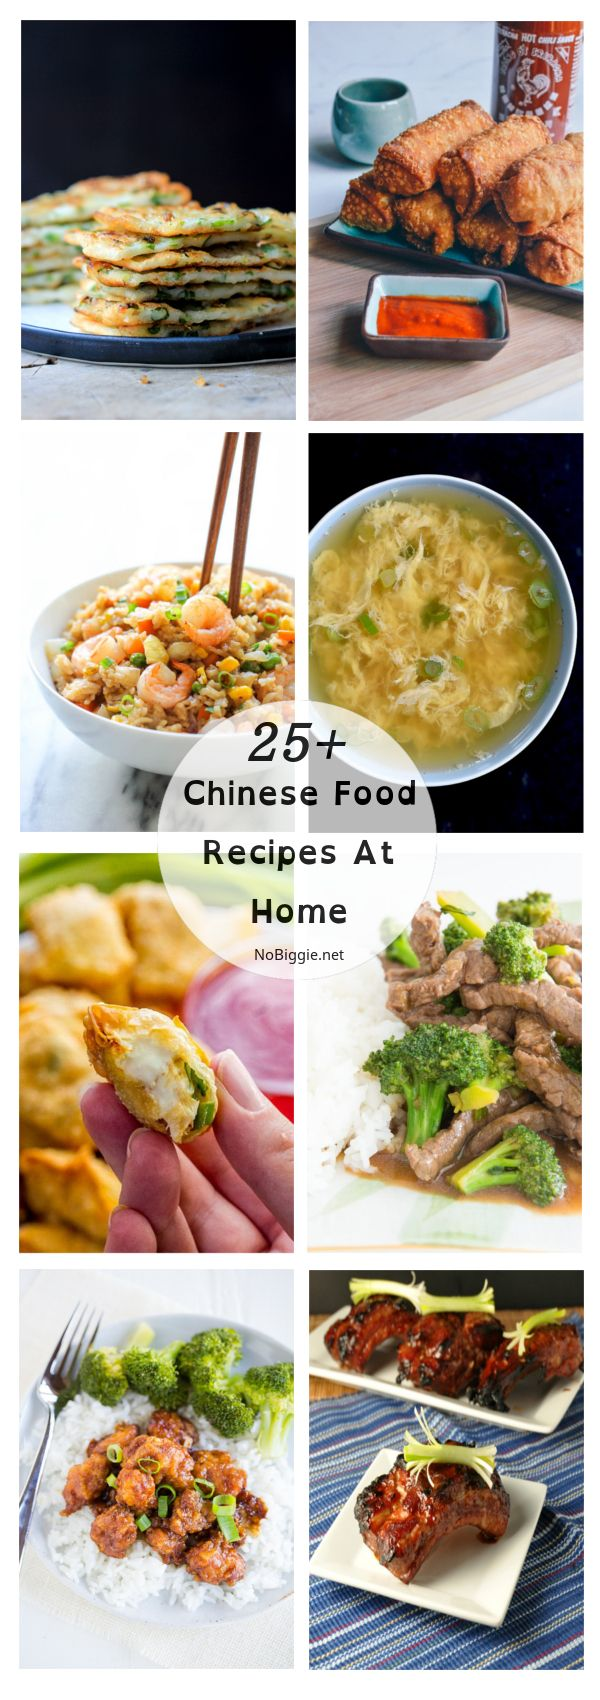 25 chinese food recipes at home chinese food recipes foods and 25 chinese food recipes at home chinese food recipes foods and recipes forumfinder Gallery